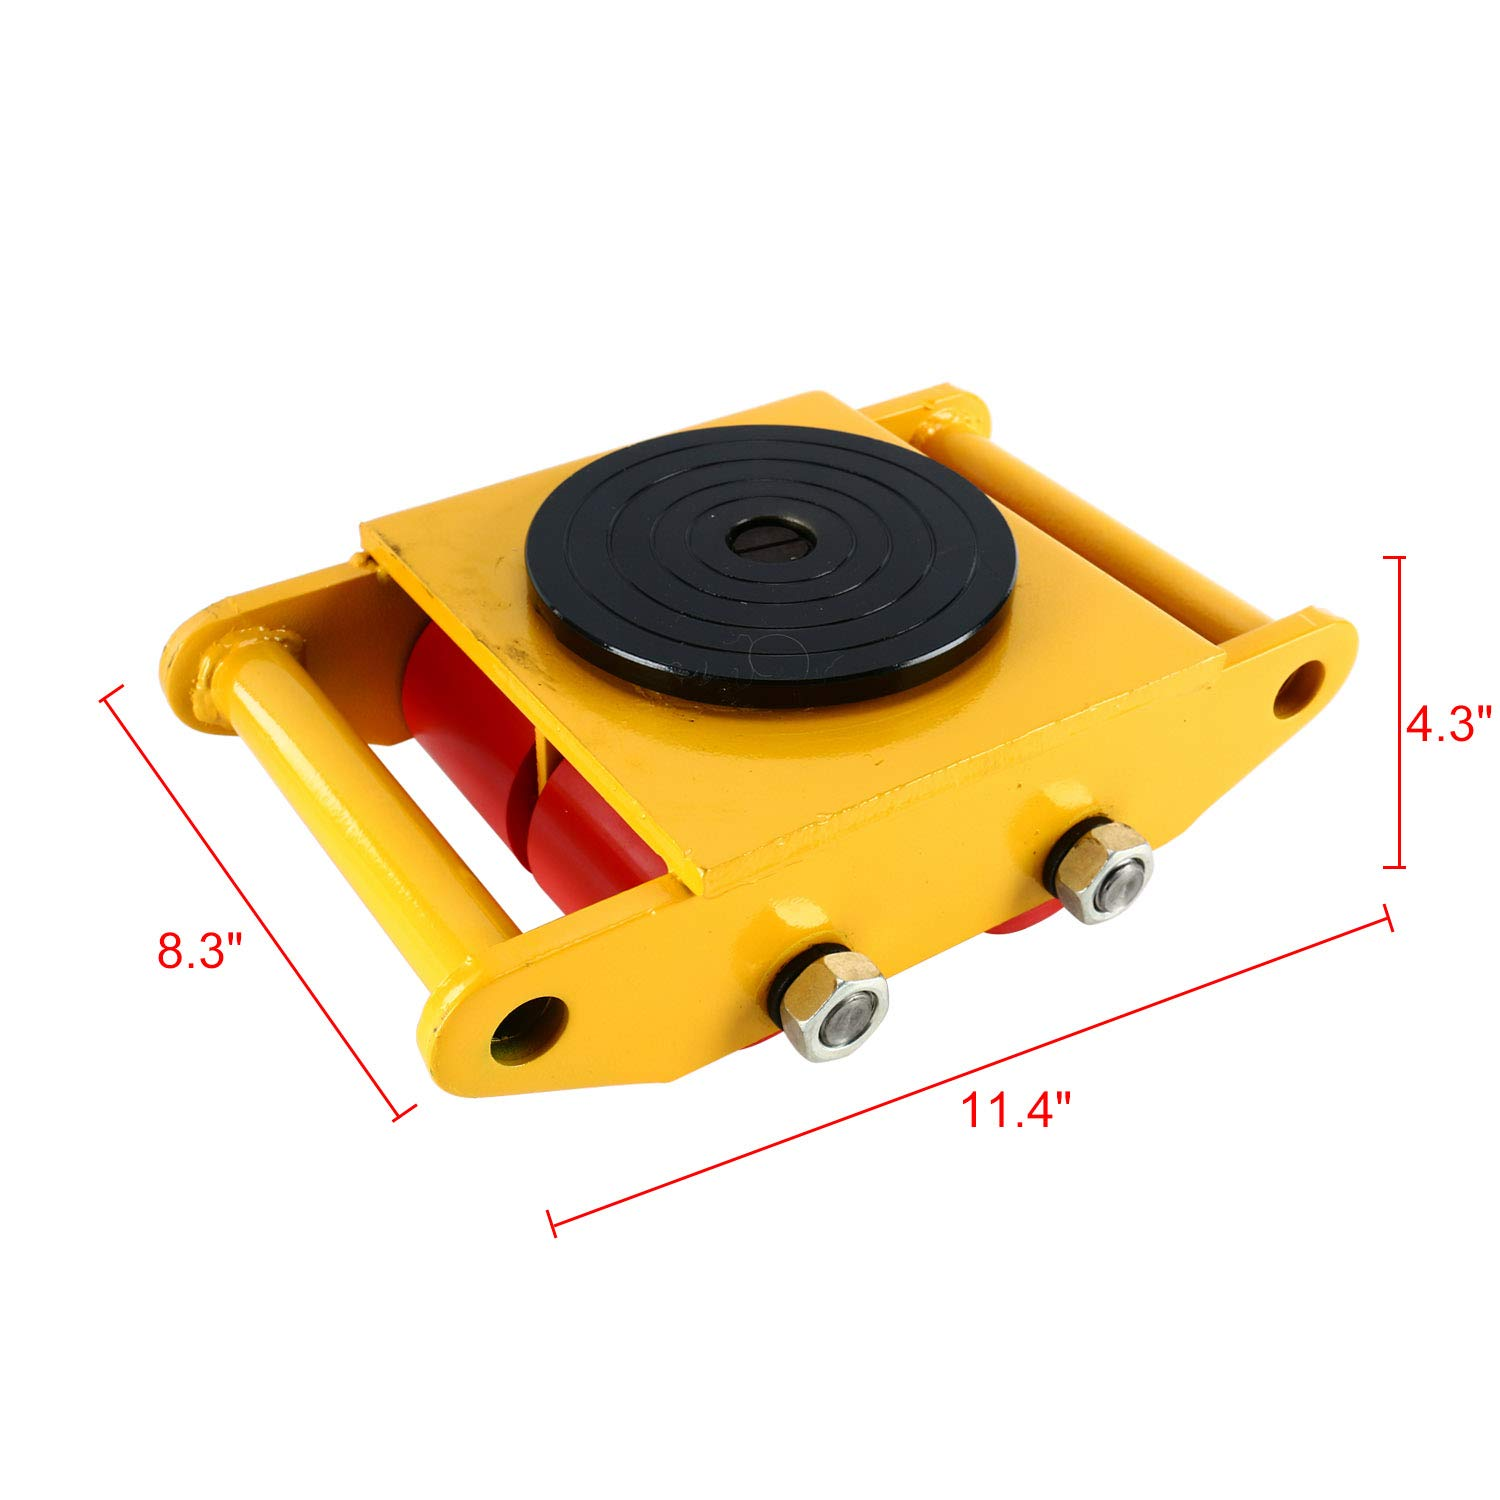 YaeTek Industrial Machinery Mover 13200 lbs 6 Tons Machinery Skate Dolly with 4 Rollers Cap 360 Degree Rotation (Yellow) by YAE TEK (Image #6)